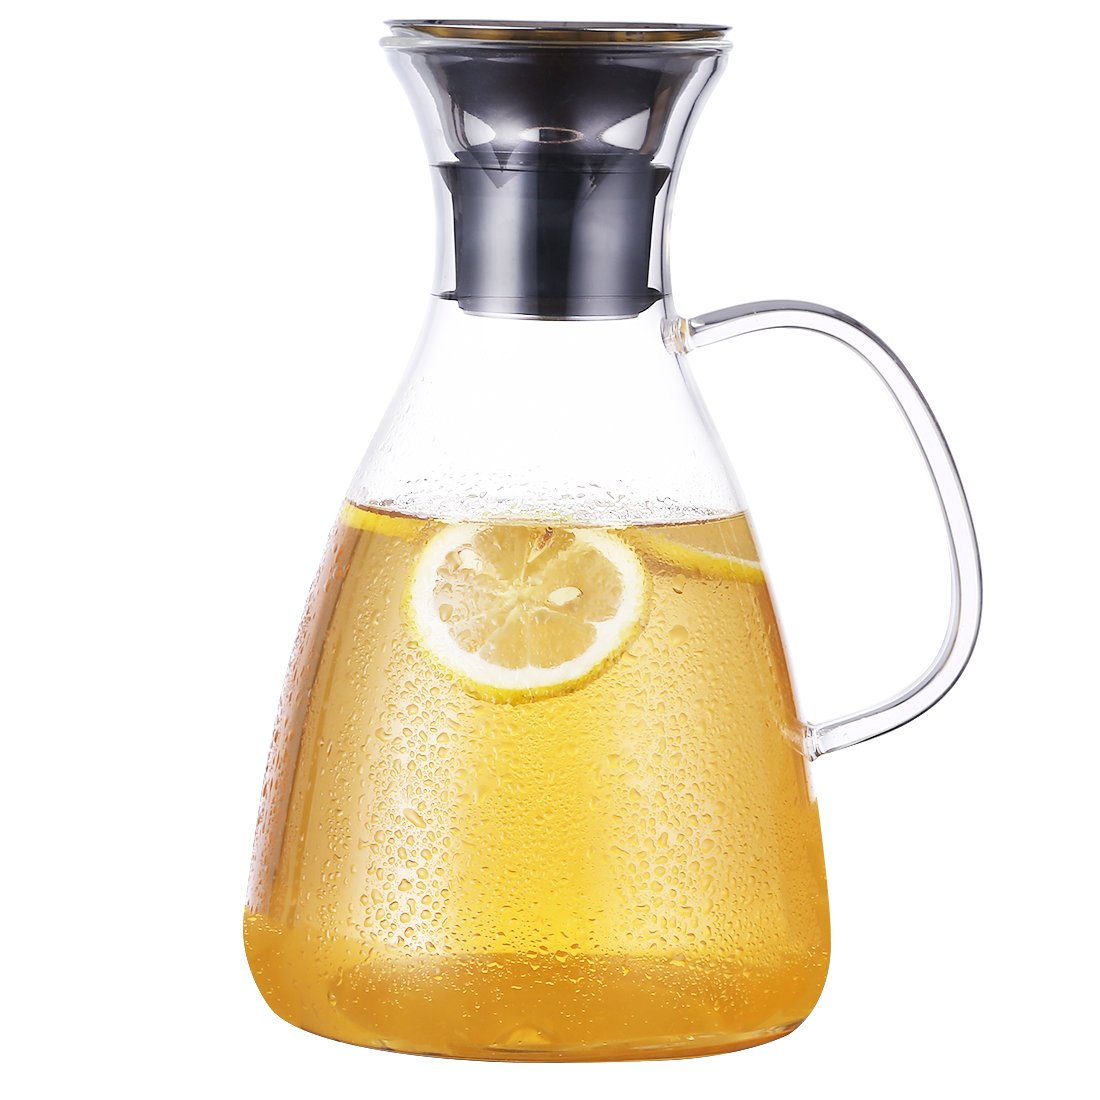 Goodeserve 55 oz Heat Resistant Borosilicate Water Carafe Glass Pitcher with Stainless Steel Flow Lid, Great for Juice and Iced Tea GD18436 (with Handle)